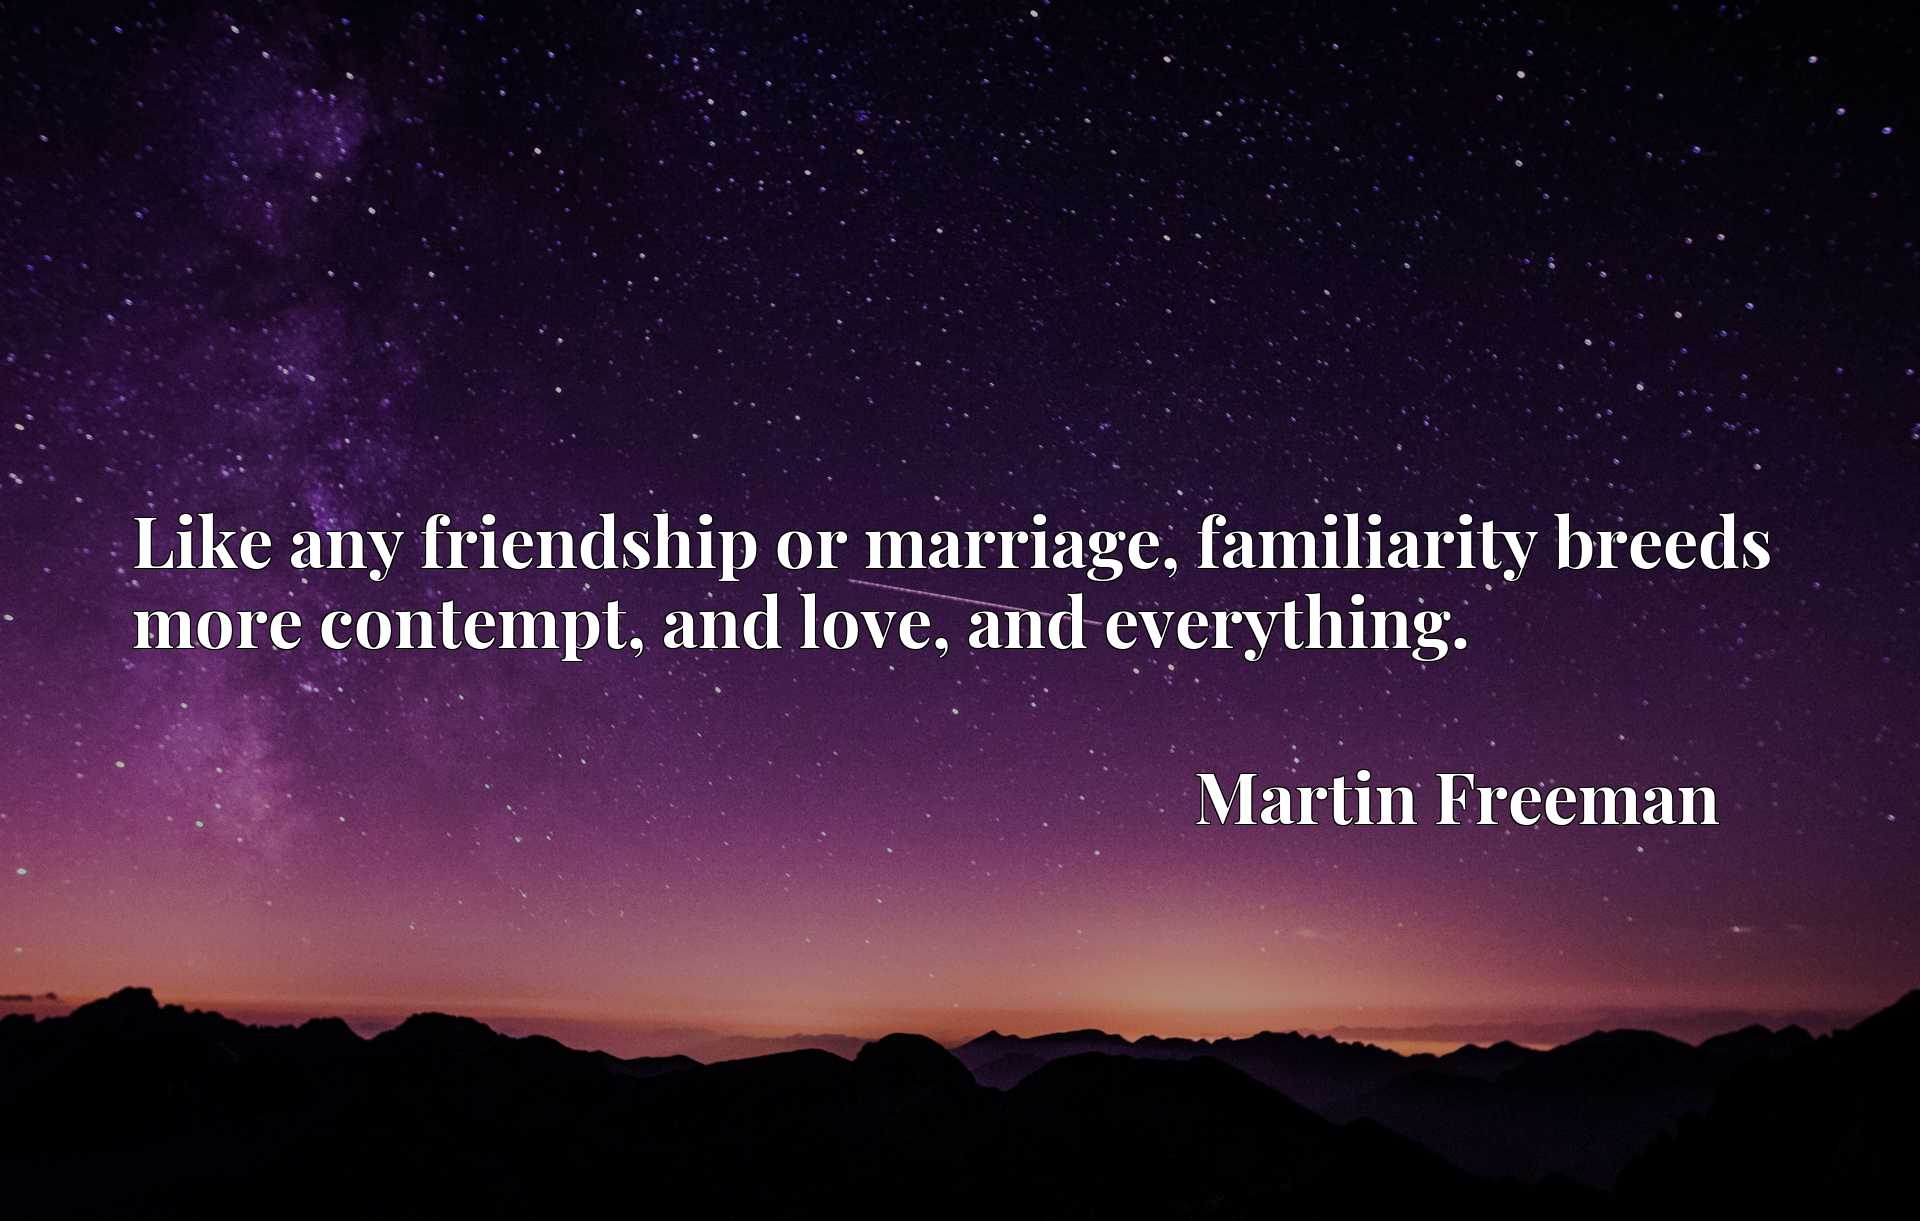 Like any friendship or marriage, familiarity breeds more contempt, and love, and everything.